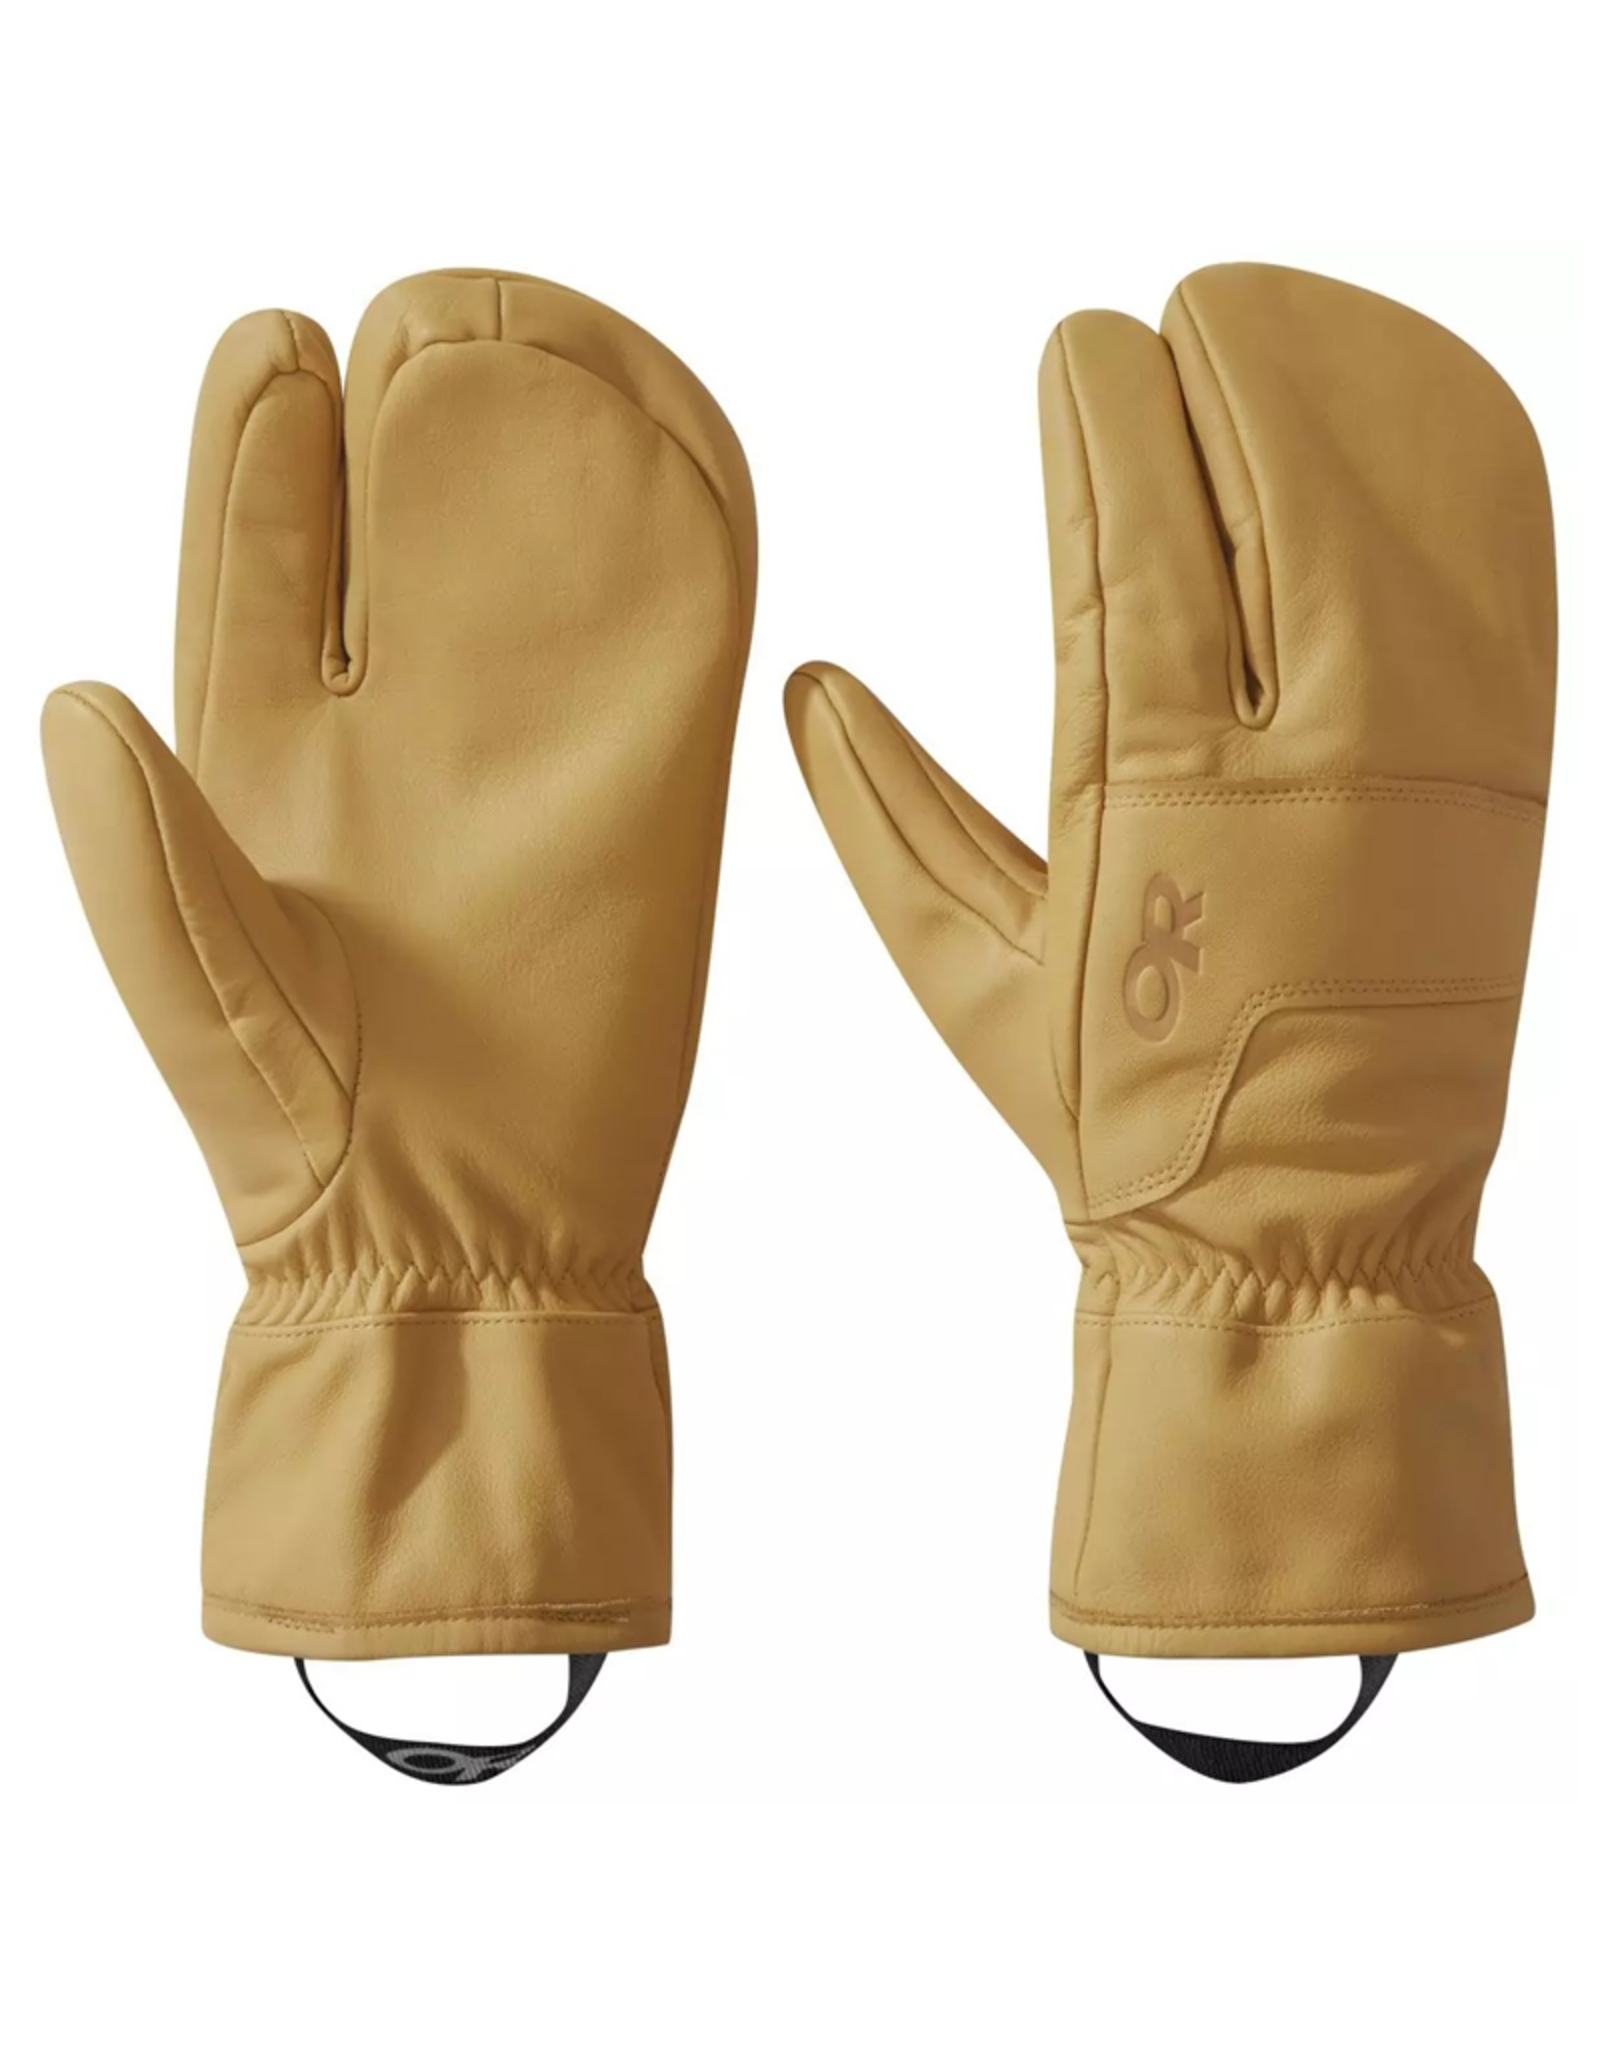 Outdoor Research Outdoor Research Aksel 3-Finger Work Glove Men's